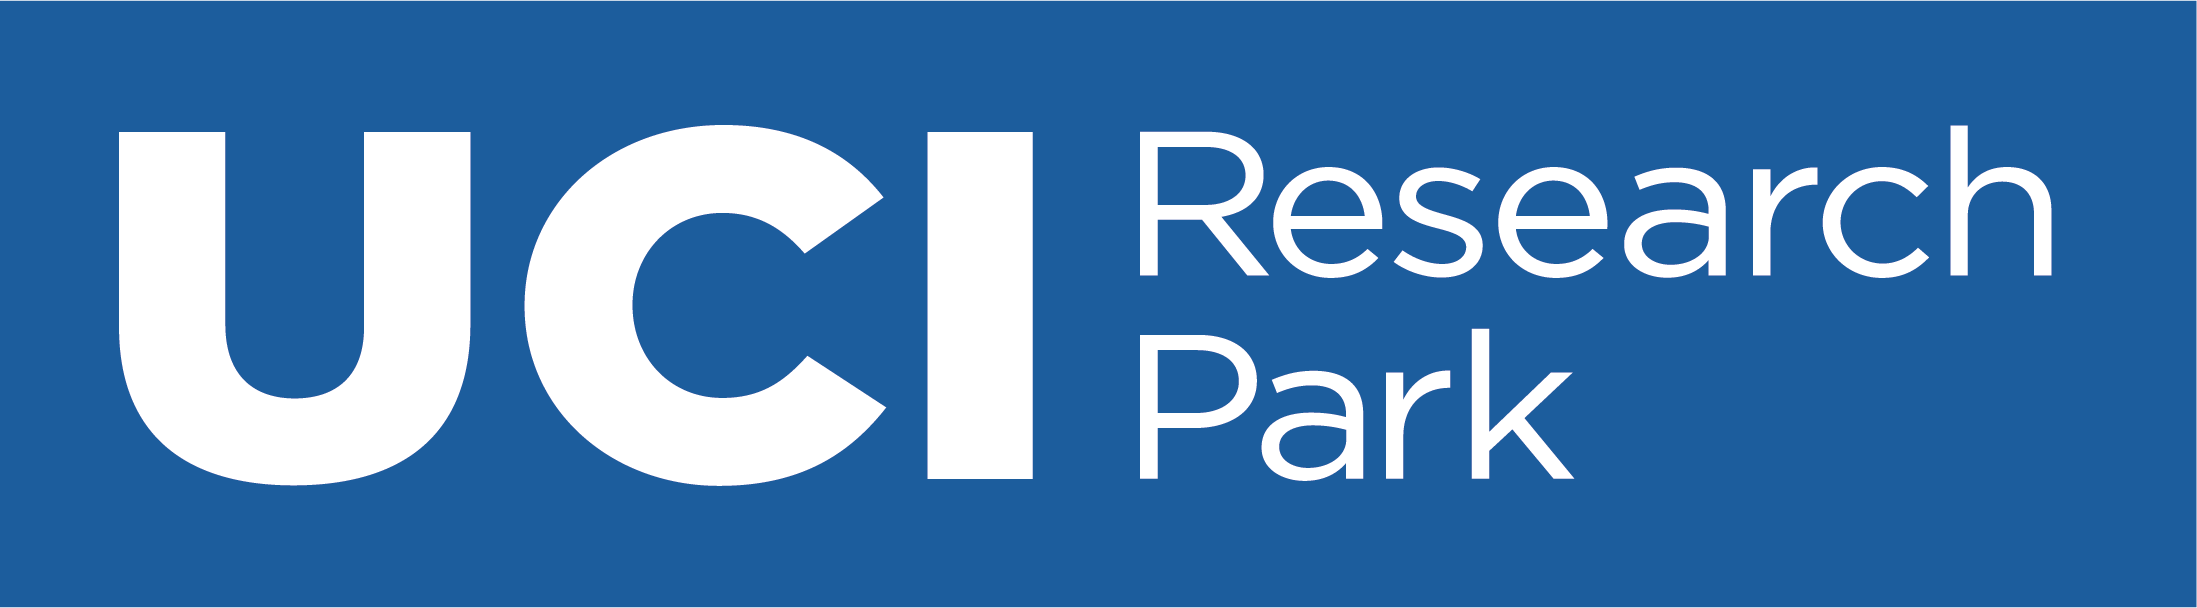 UCI Research Park Logo